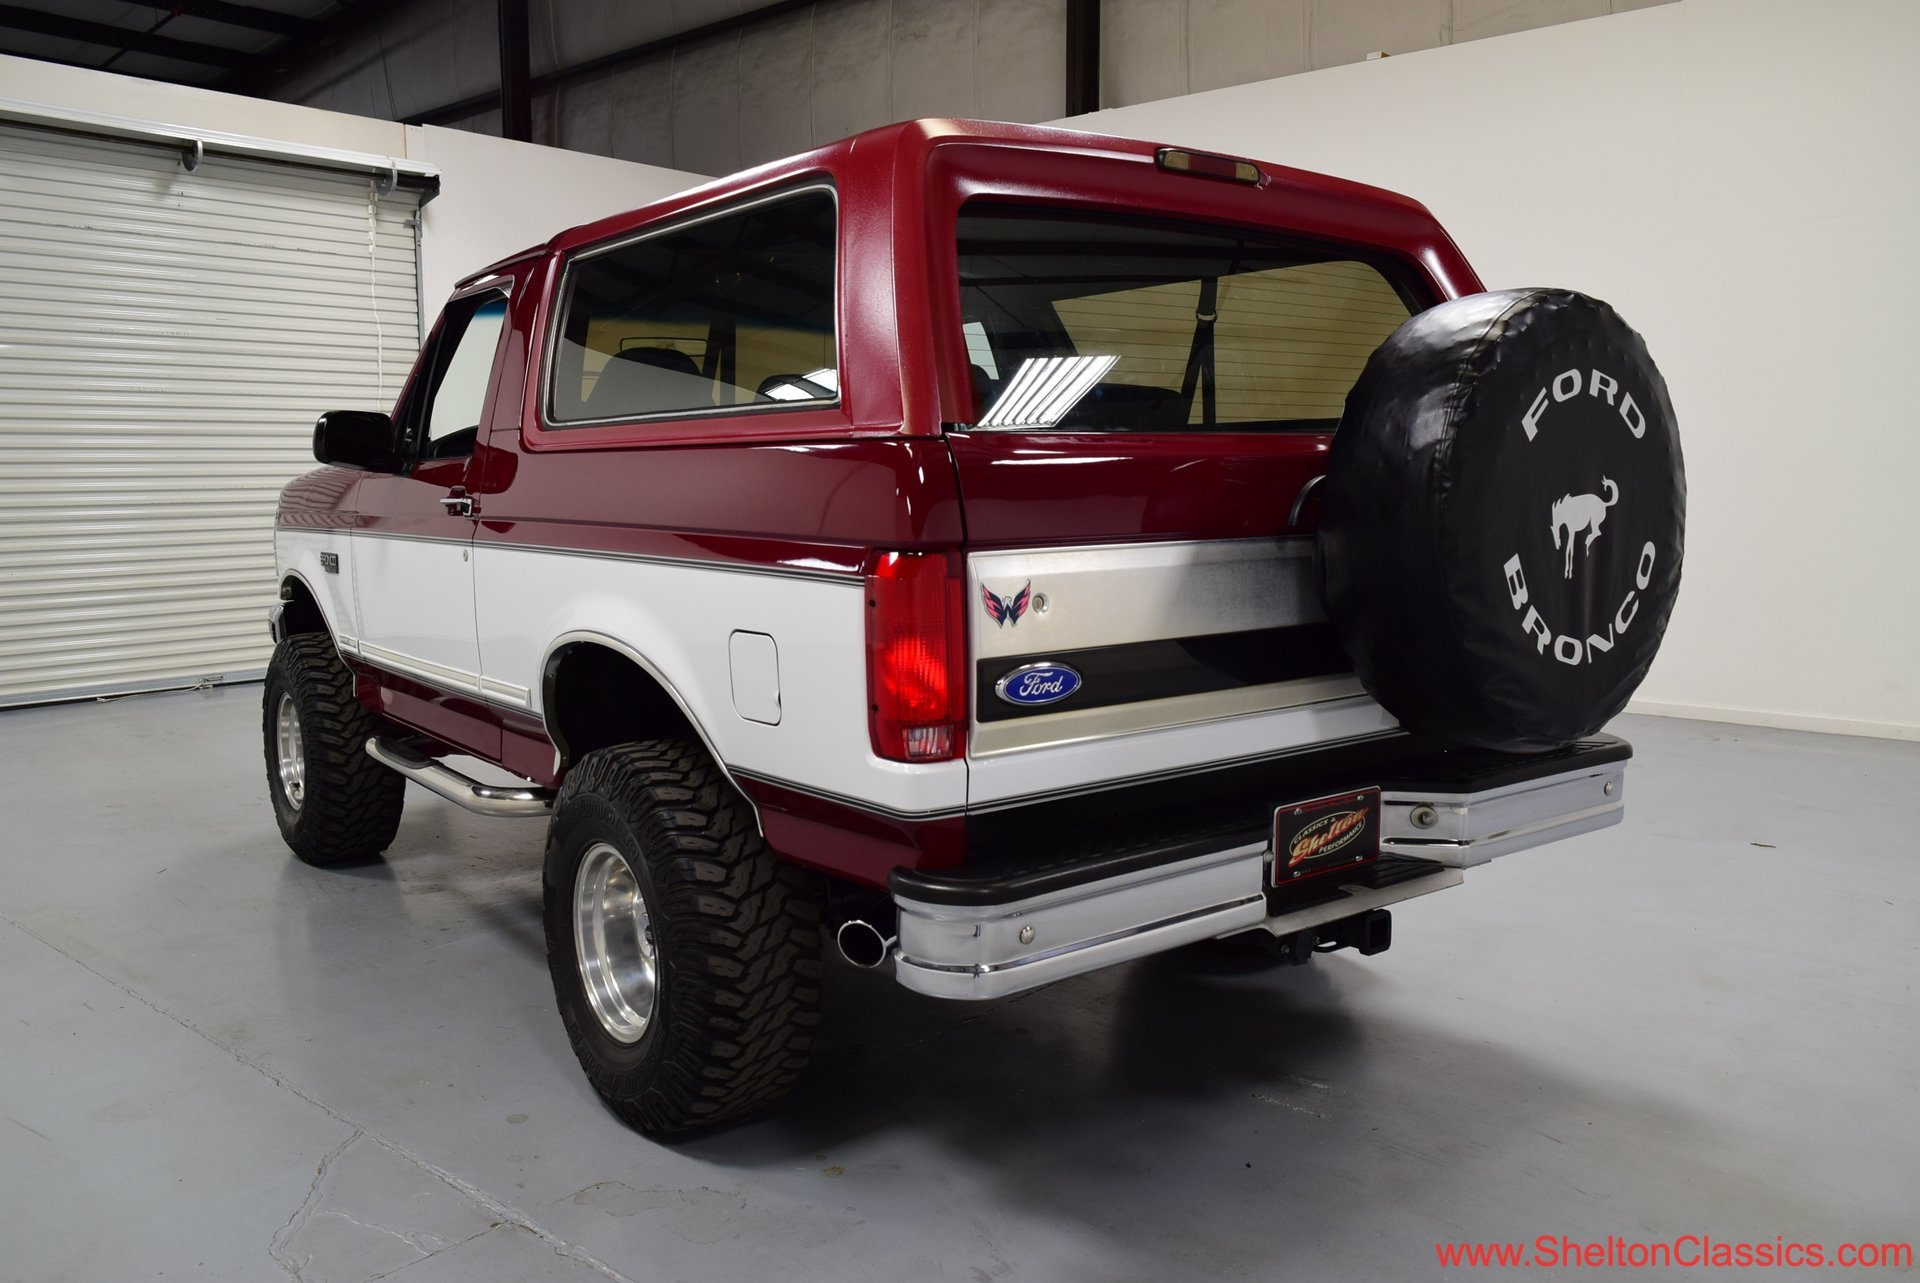 1993 Ford Bronco Shelton Classics Performance